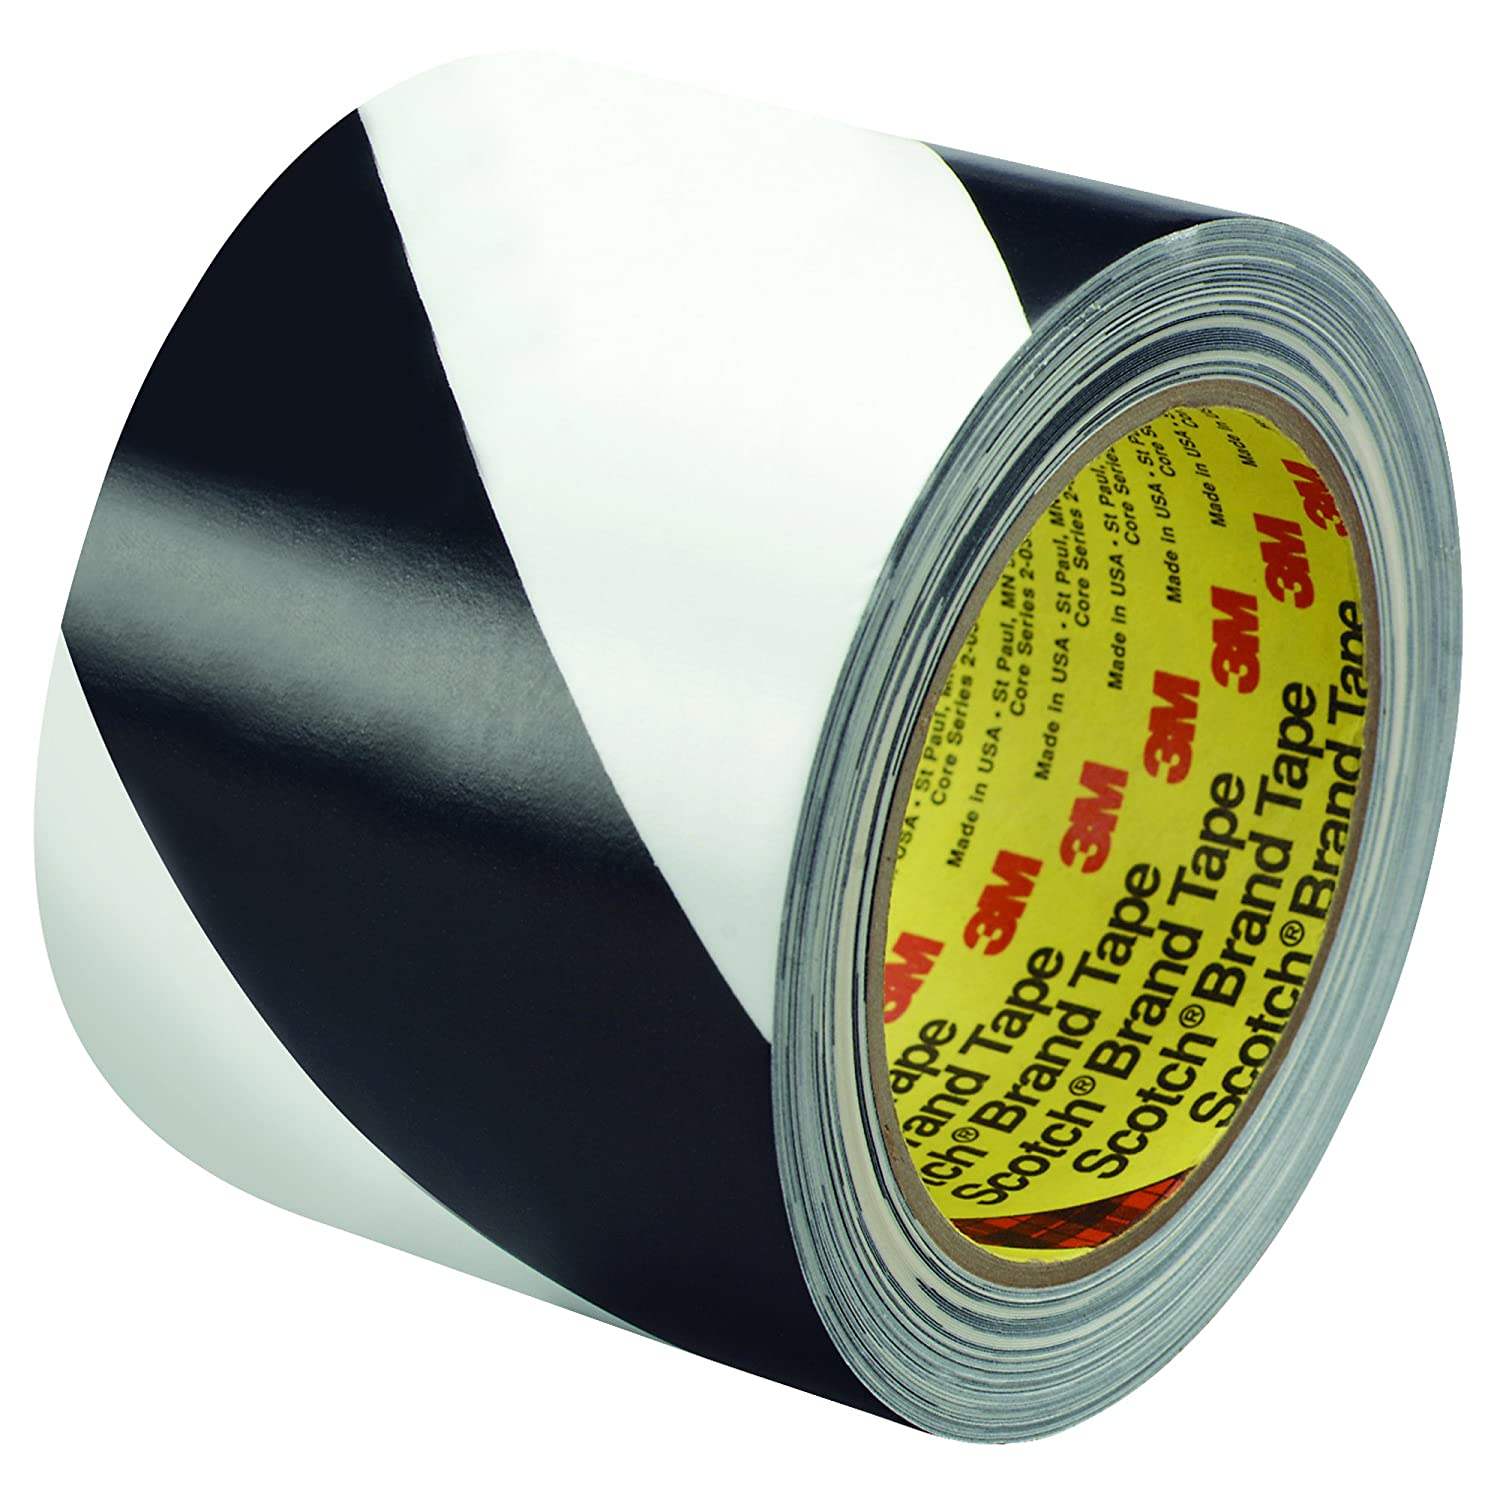 3M 5700 Striped Vinyl Tape 5.4 Max 53% OFF Mil yds White 36 x Sales of SALE items from new works 3